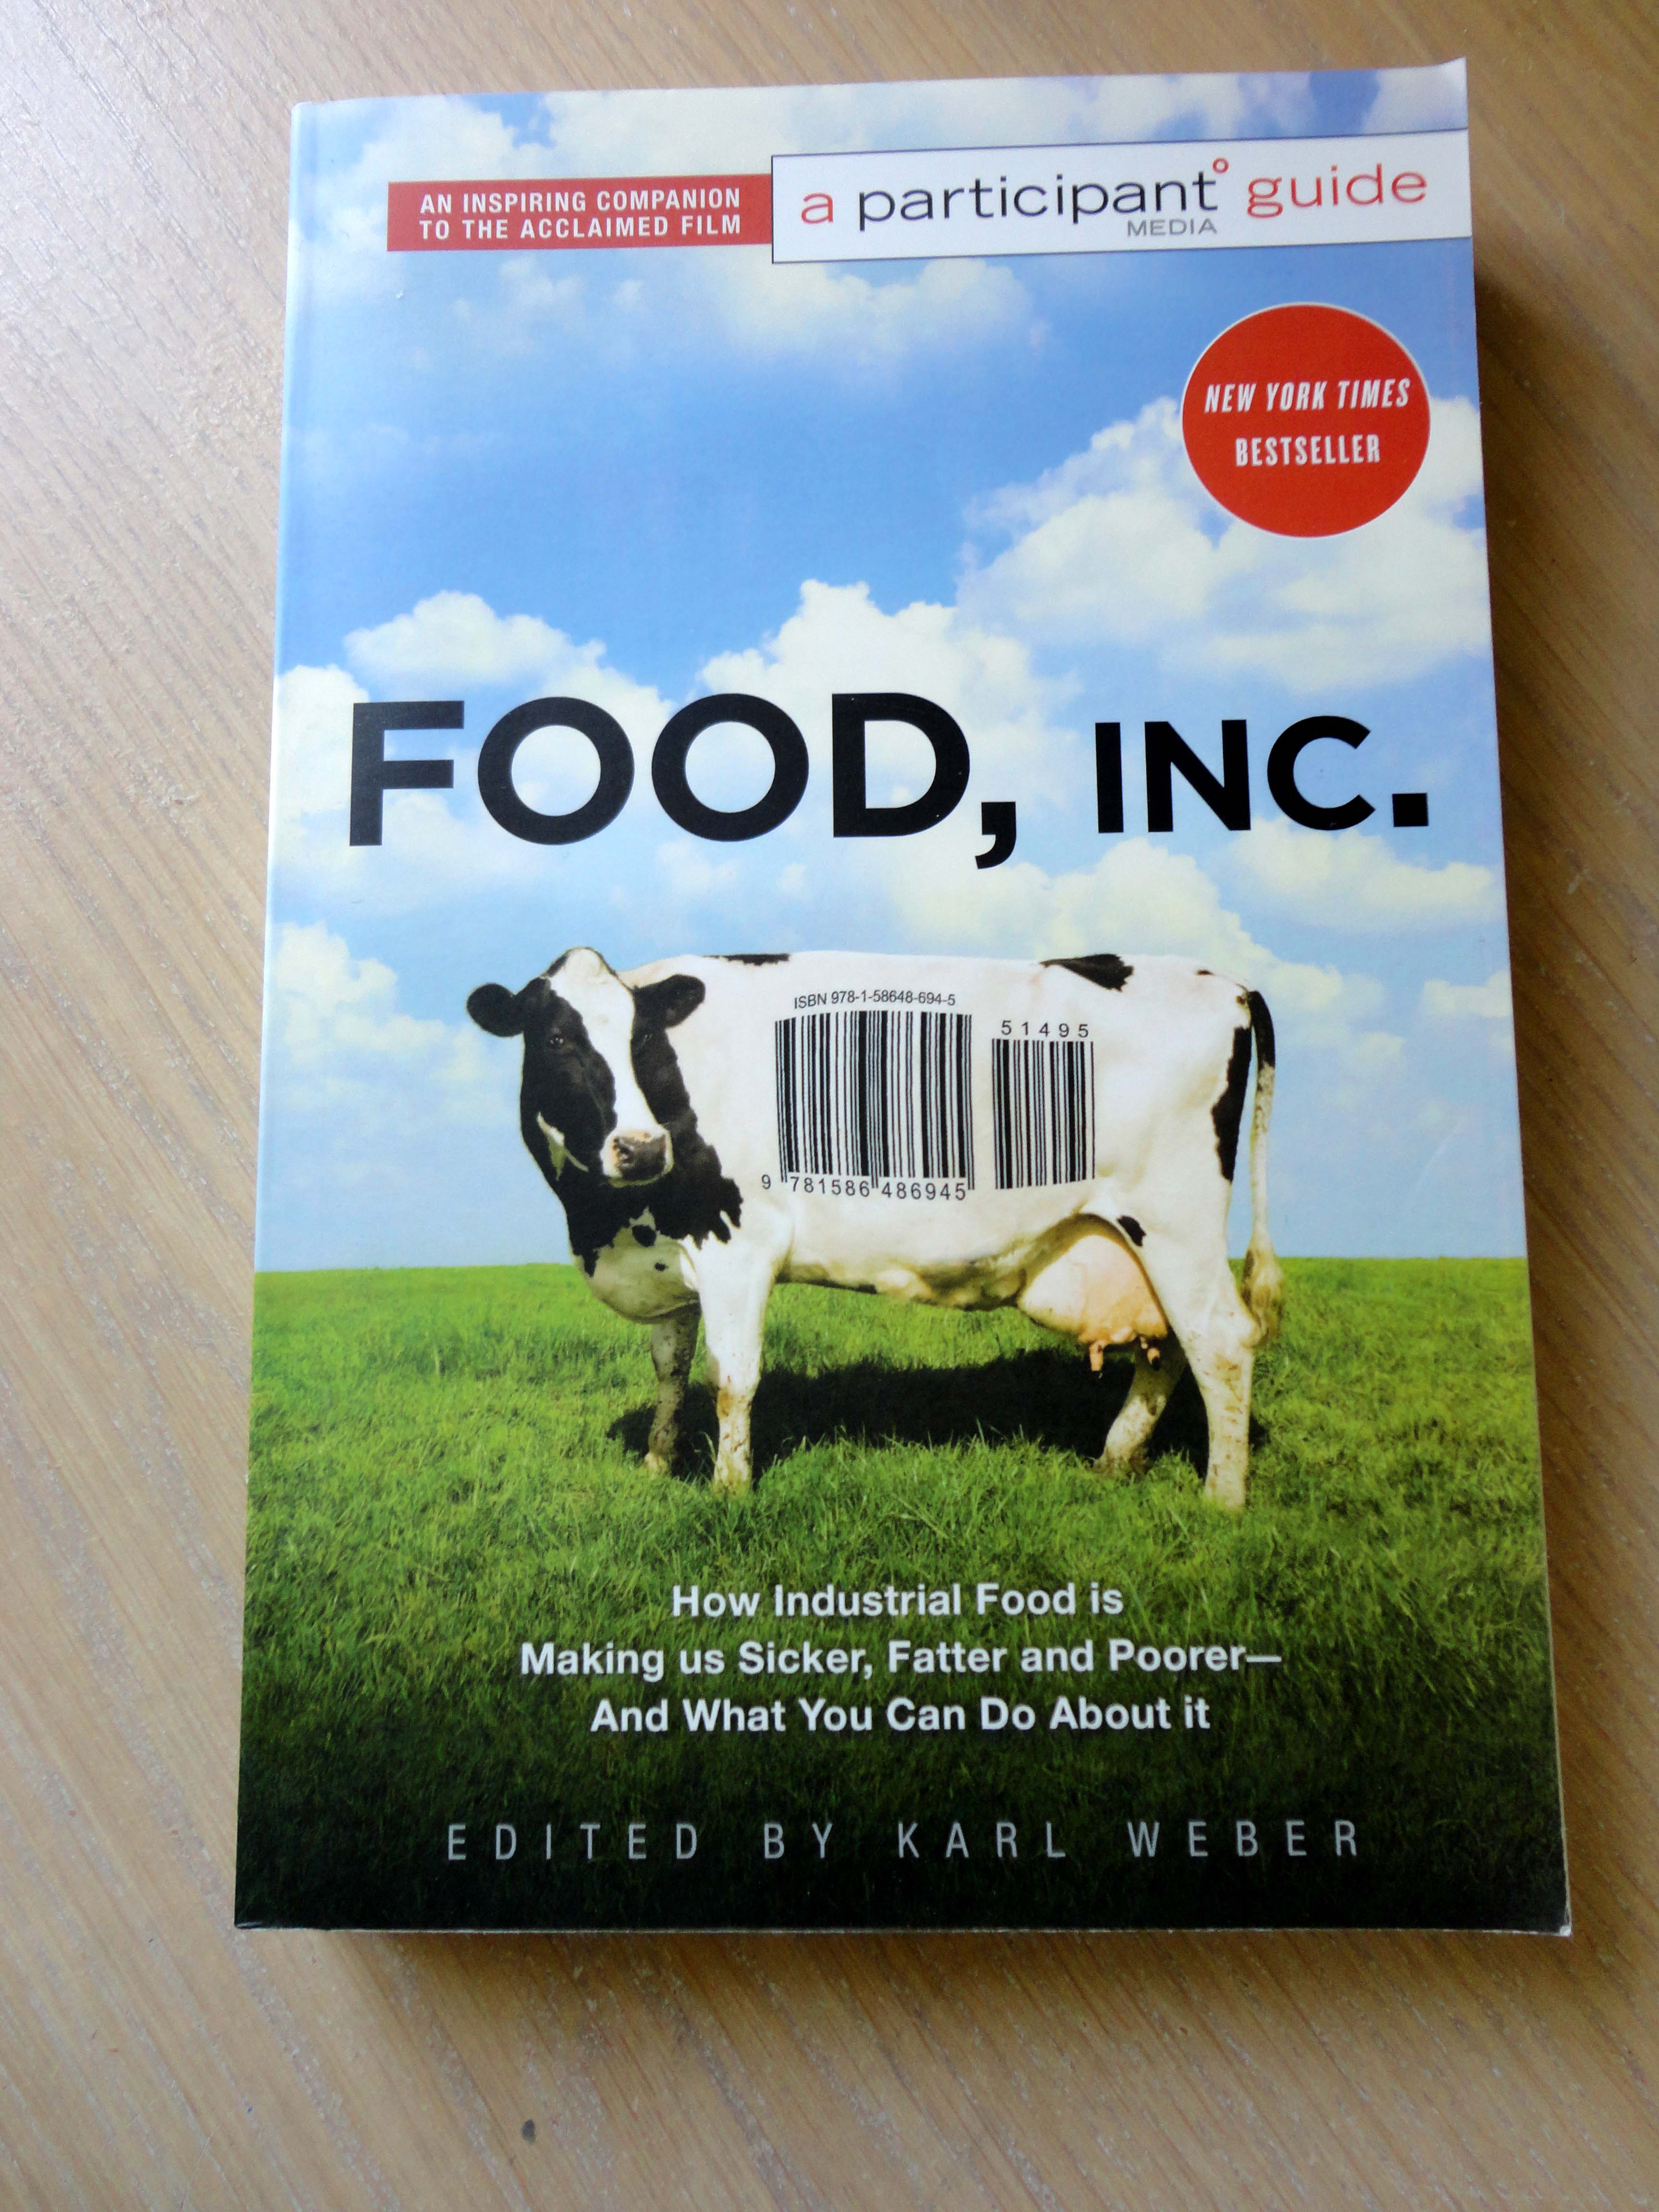 essays about food inc The role of nutrition food cannot be neglected in the promotion of health and prevention 302 words short essay on food essays, letters, stories.